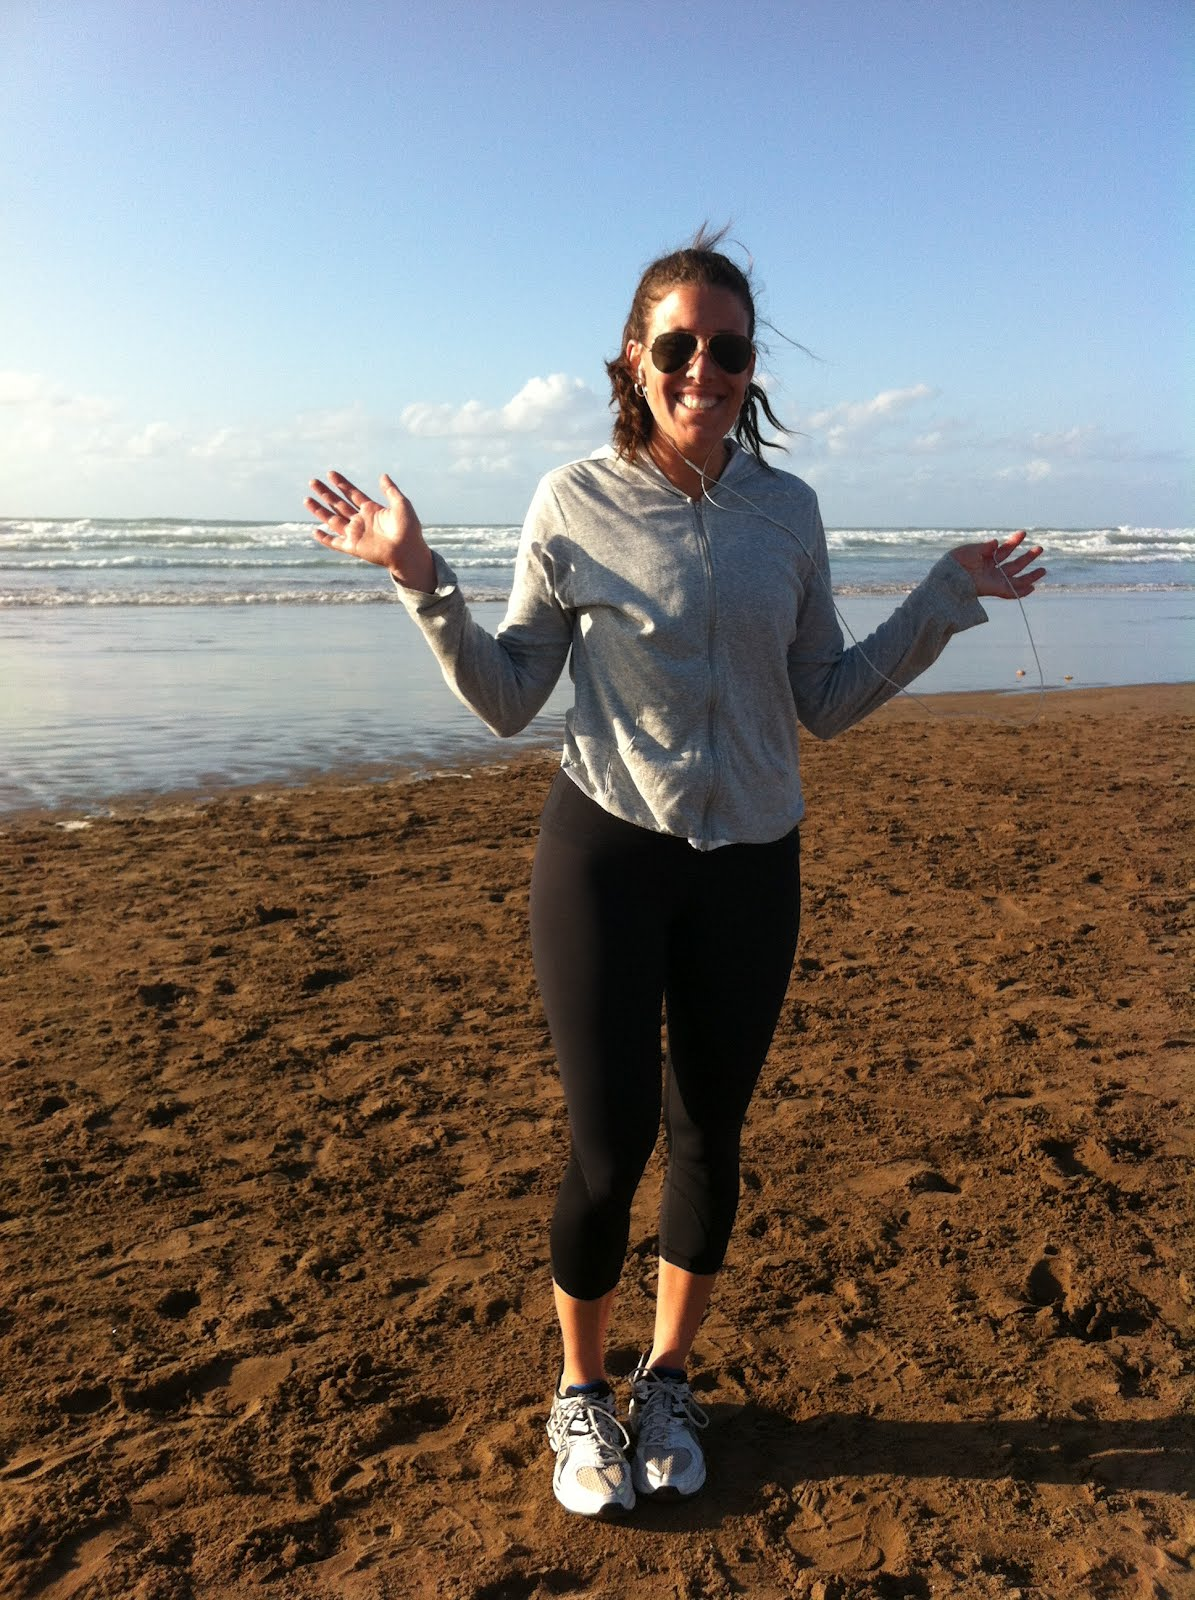 Best Places To Meet Girls In Casablanca & Dating Guide - WorldDatingGuides